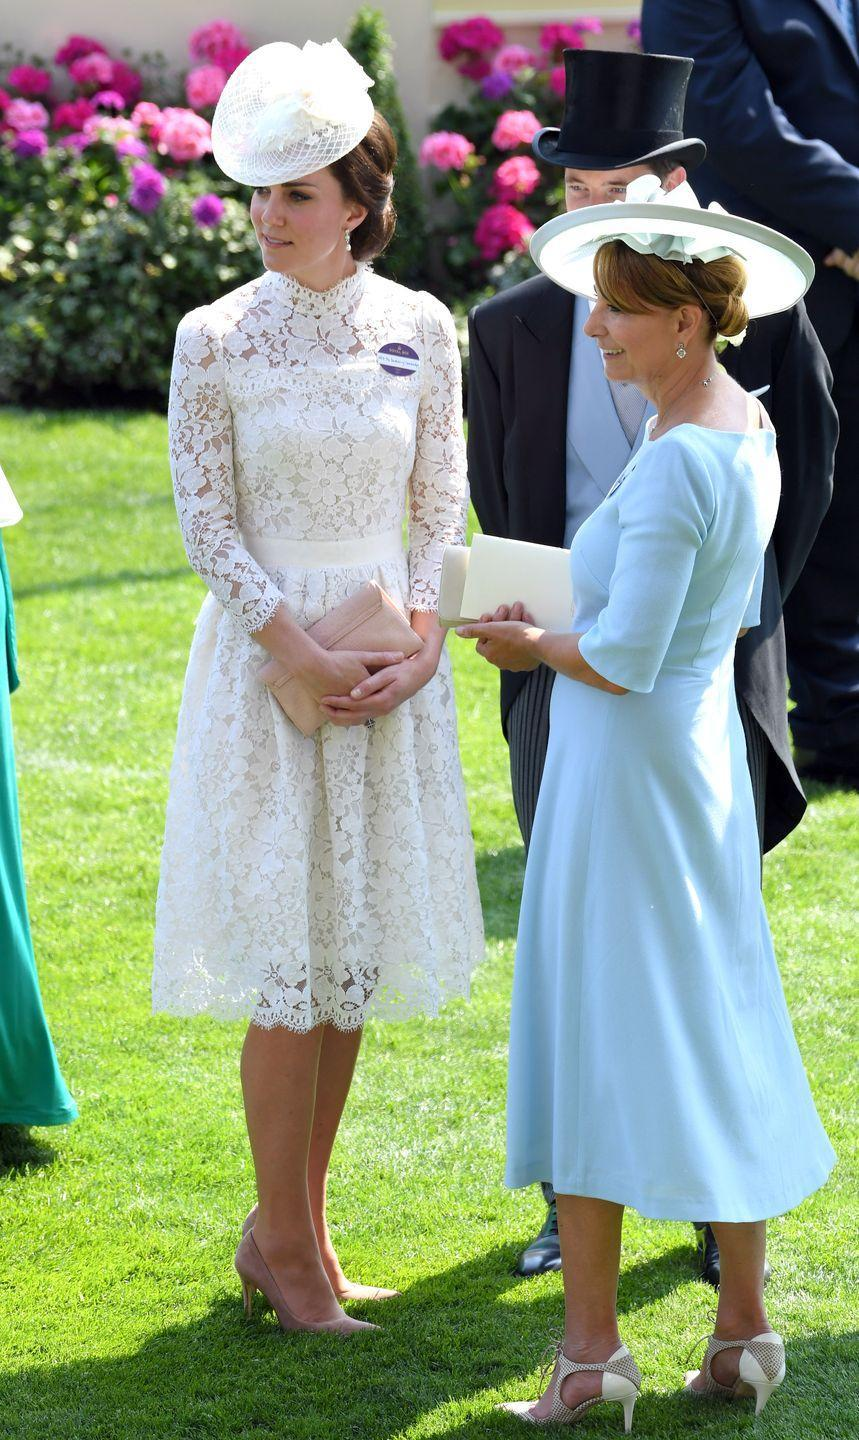 <p>The Duchess wore McQueen white lace, reminiscent of her wedding gown, to 2017's Royal Ascot horse race. Here, she chats with her mother, Carole Middleton. </p>